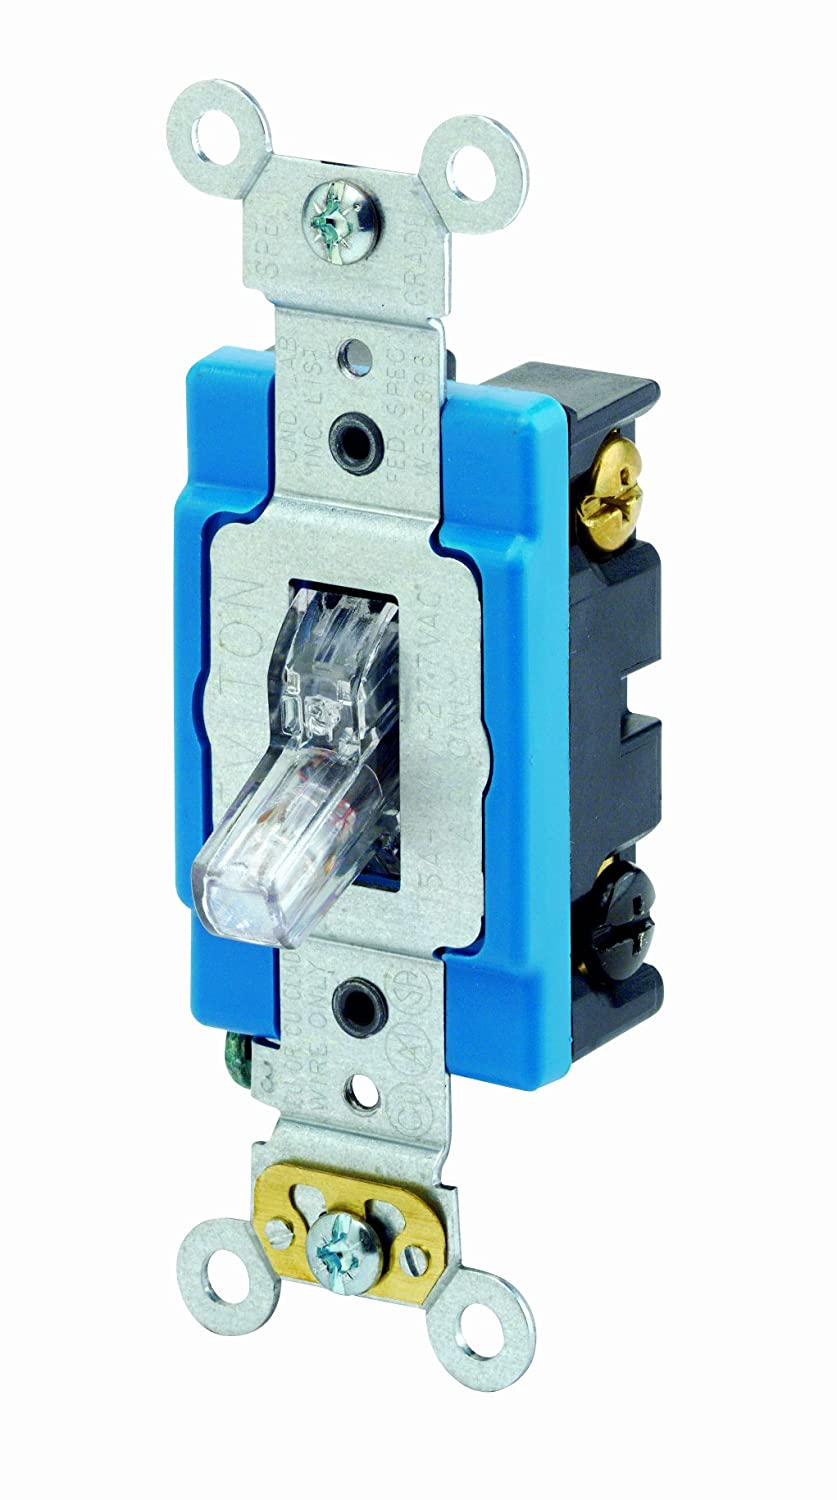 Lighted Light Switches Leviton Switch Wiring Diagram 1201plc 15 Amp 120 Volt Toggle Pilot